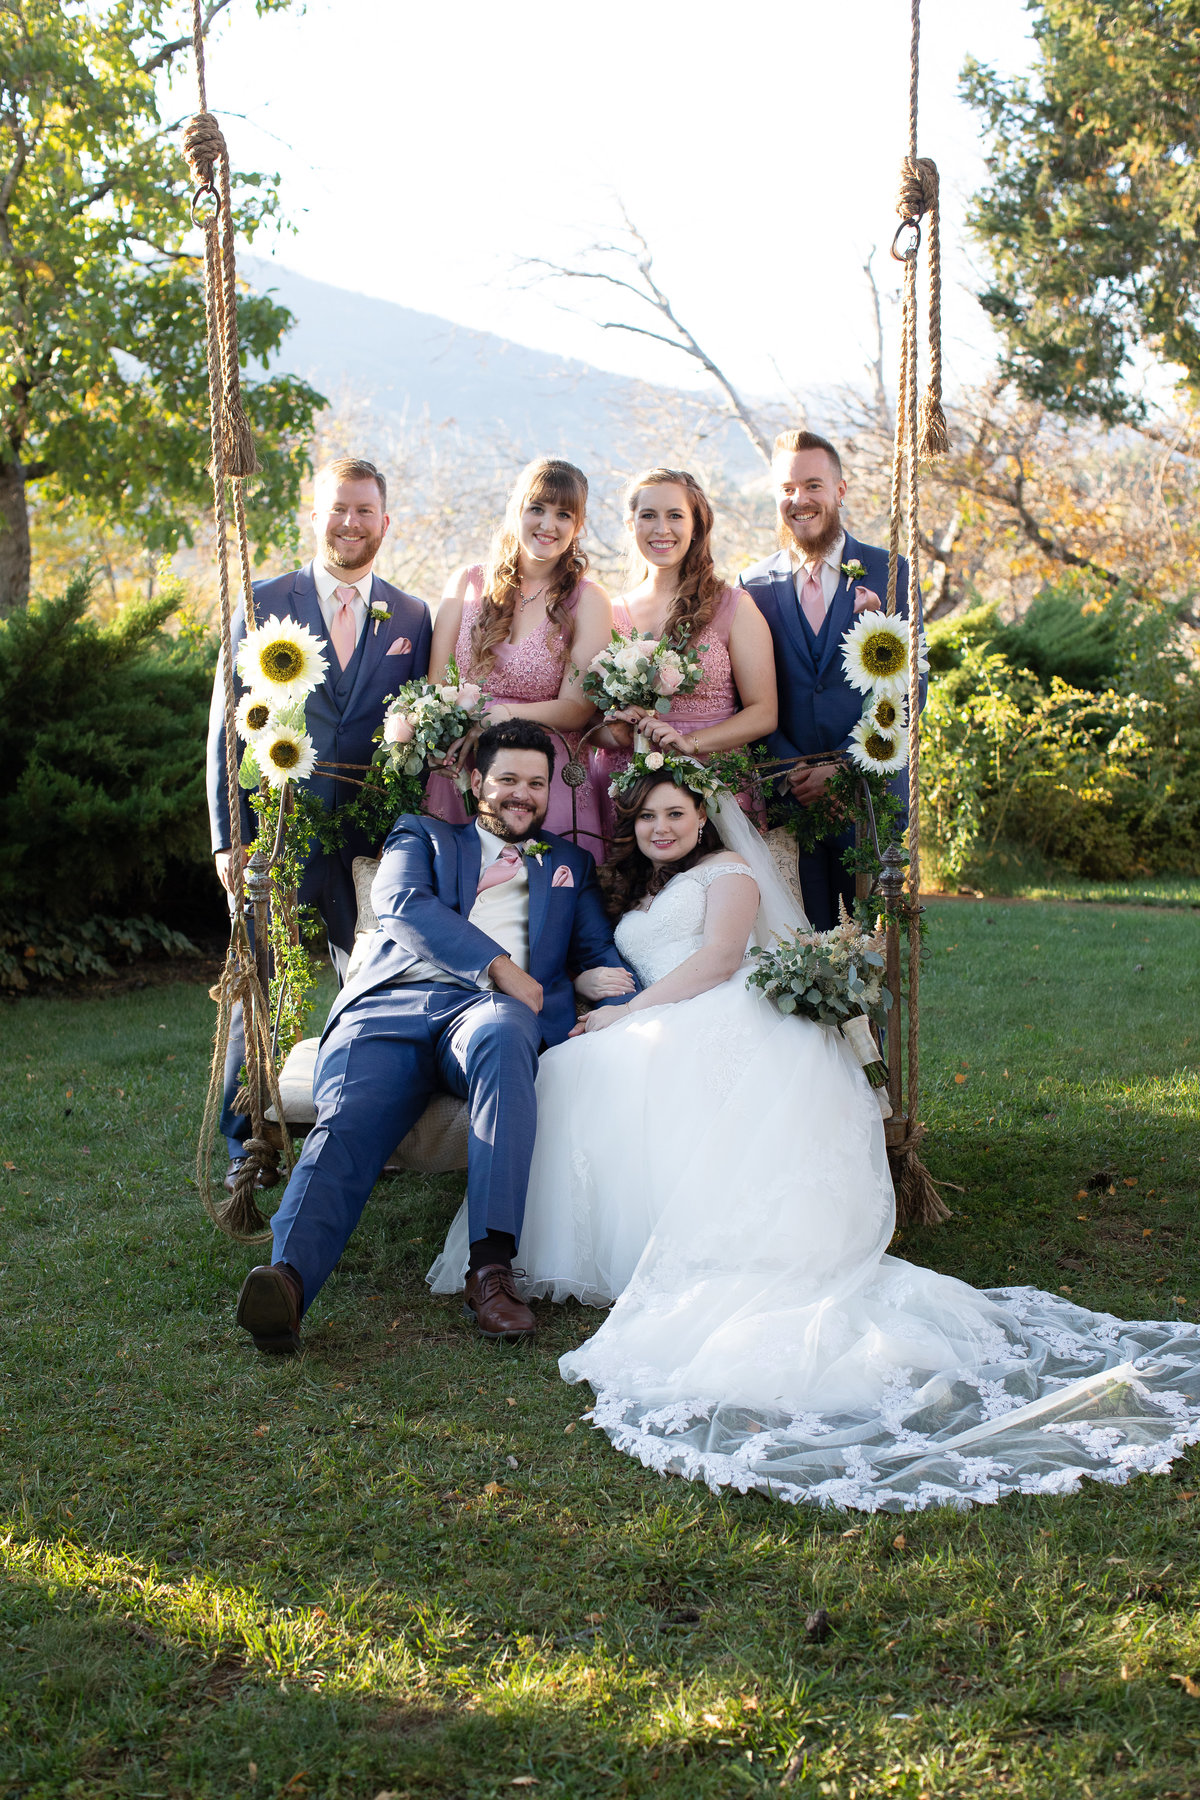 bridal party on swing